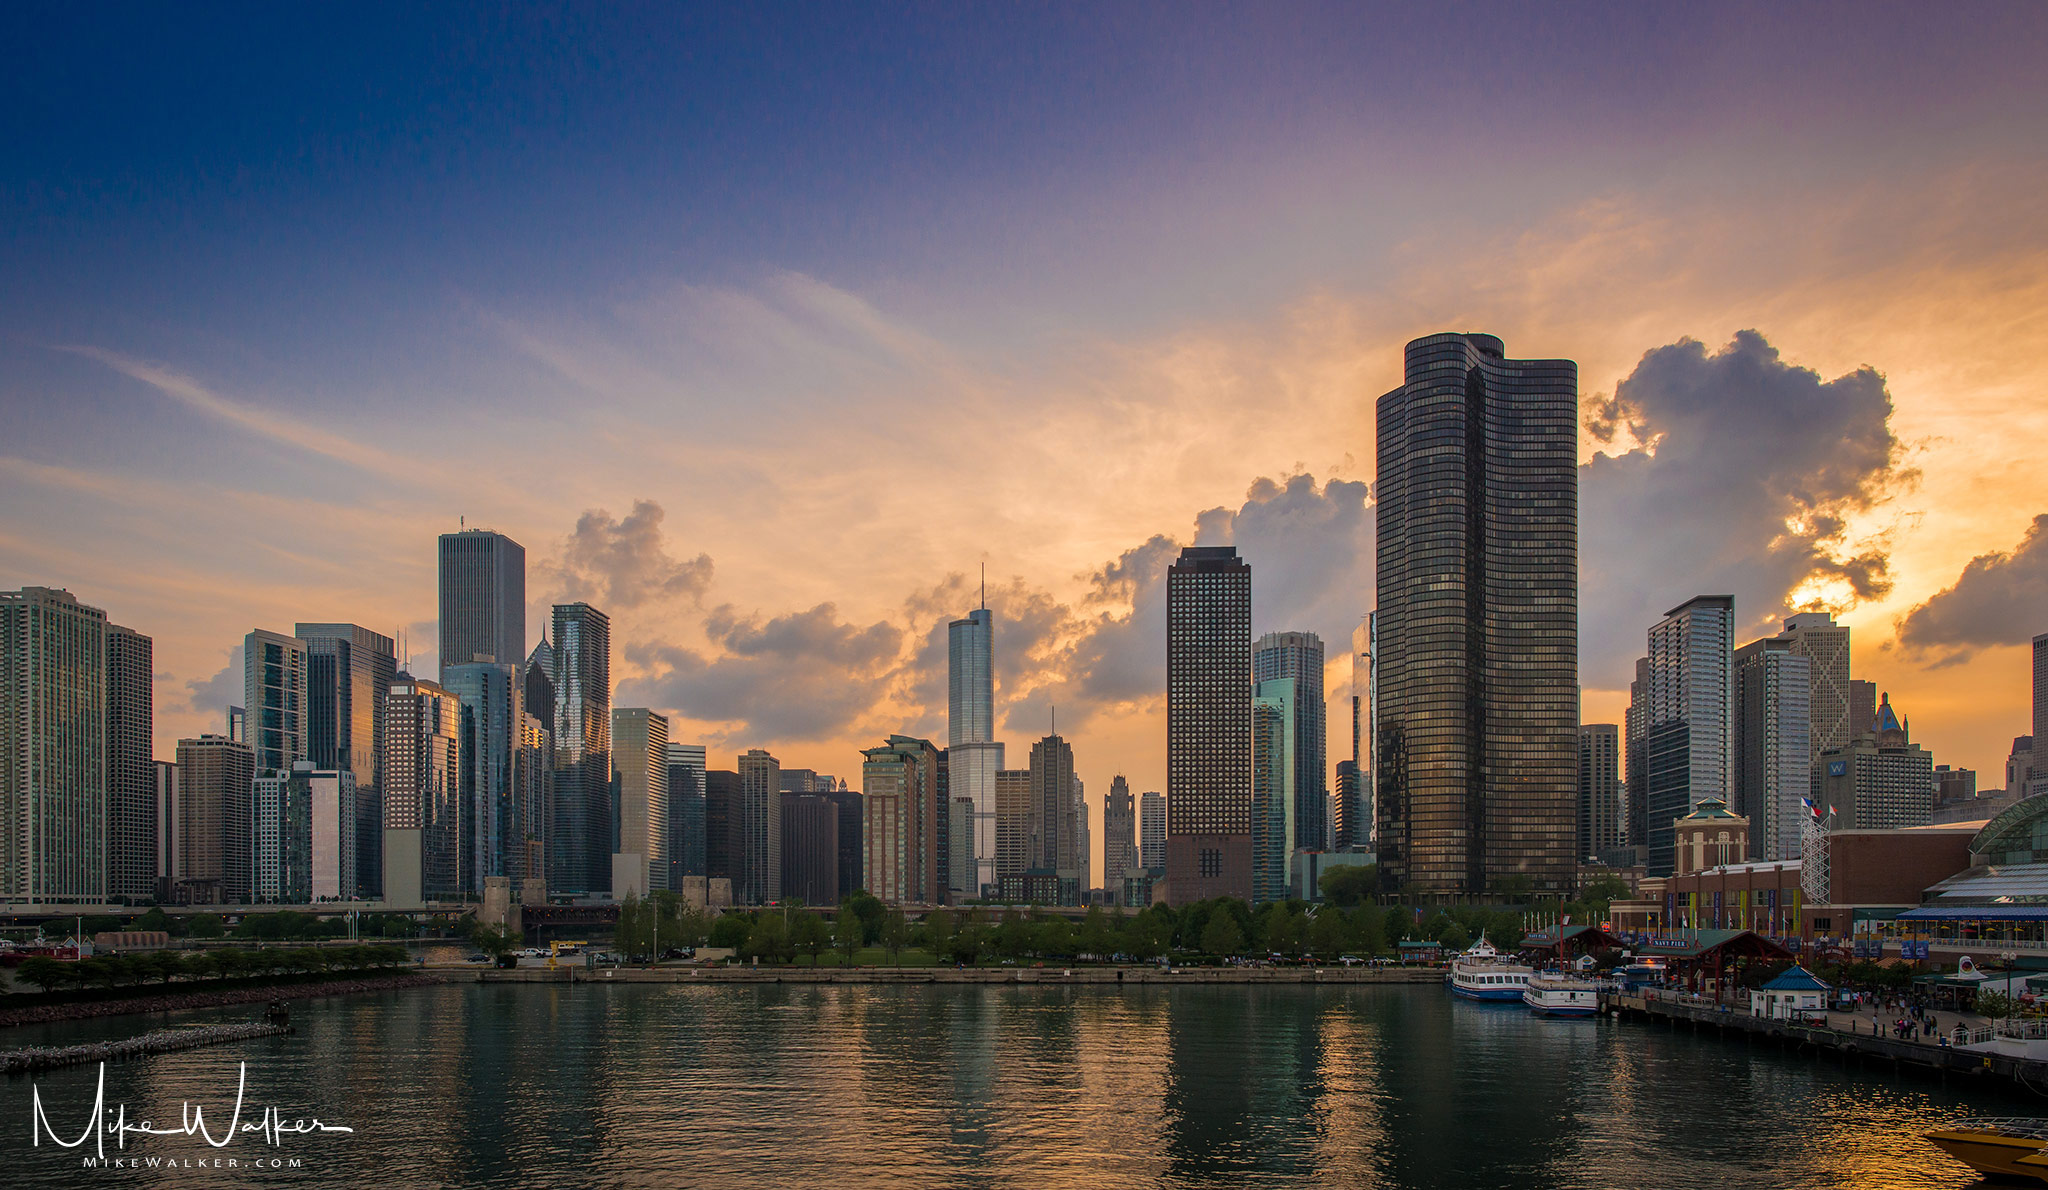 Downtown Chicago from Lake Michigan. Travel photography by Mike Walker.